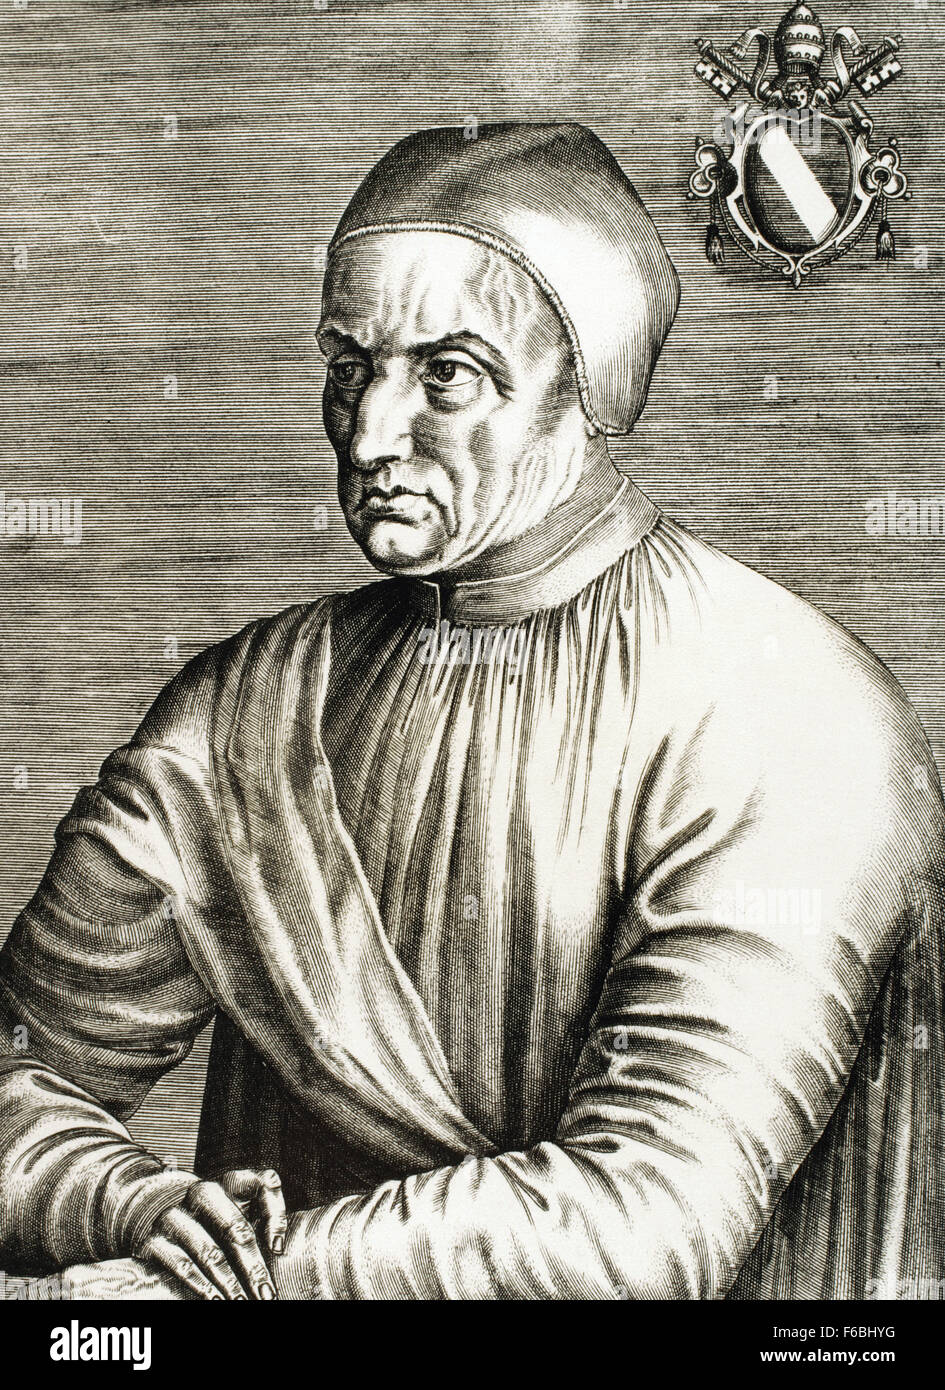 Pope Eugene IV (1383-1447). Born Gabriele Condulmer, was pope from 1431-1447. Portrait. Engraving. - Stock Image